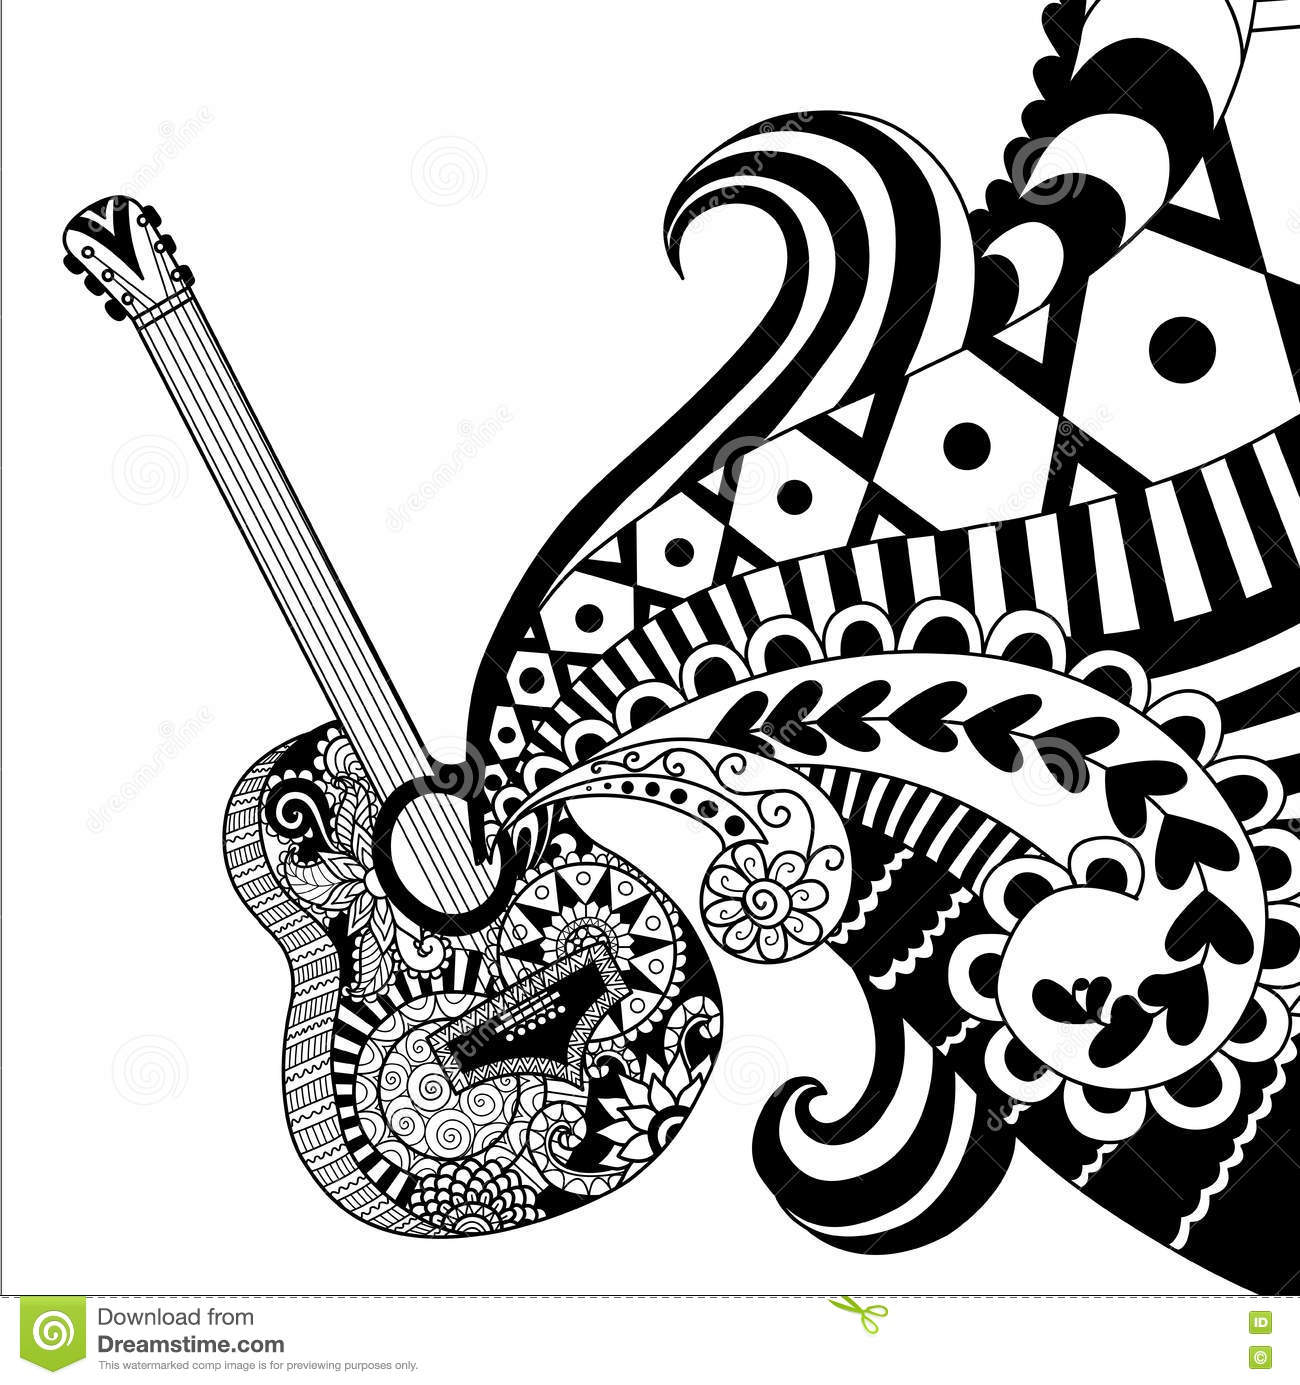 Doodles Design Of Guitar For Coloring Book For Adult